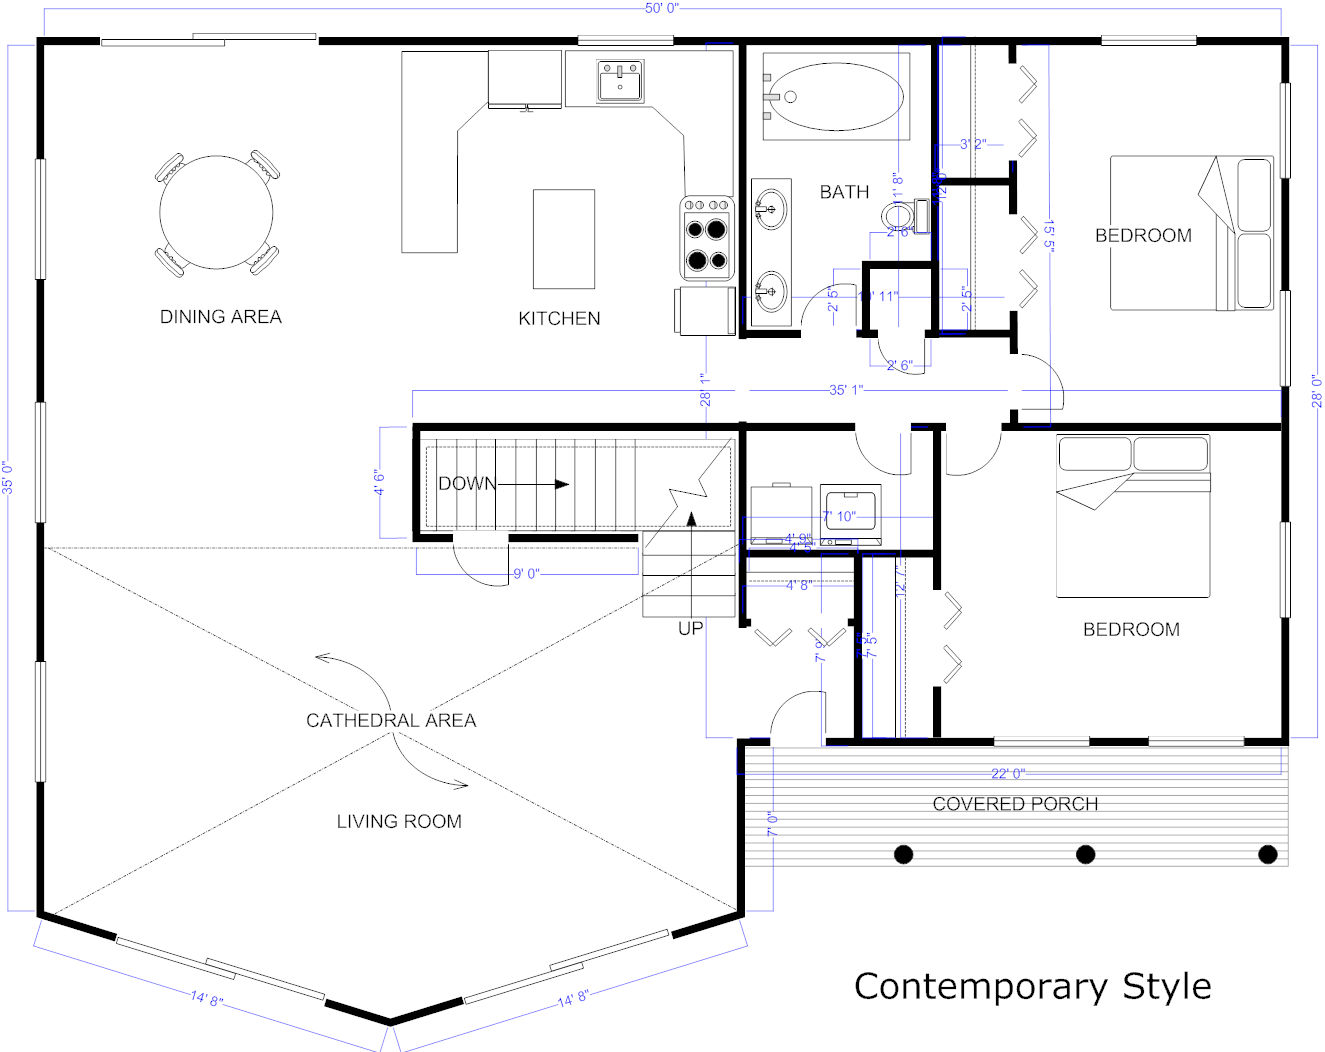 Example blueprint created with smartdraw plans rustic style example created with smartdraw blueprint software draw house plan how floor plans build your own make best free home design idea inspiration malvernweather Choice Image